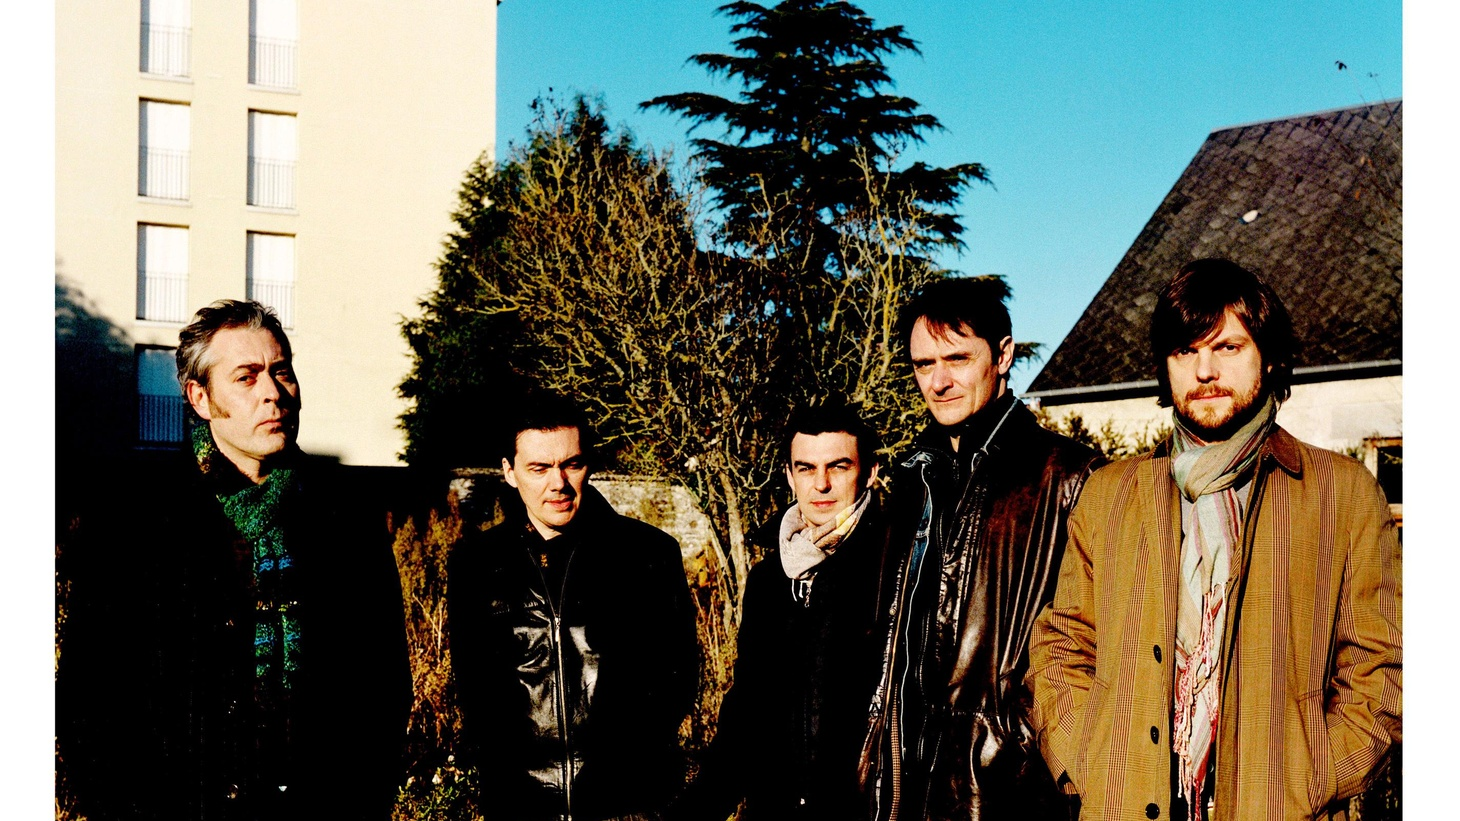 ...from The Hungry Saw.   Tindersticks craft literary songs rich with gentle arrangements and orchestrations. Their brooding songs explore the gamut of love...